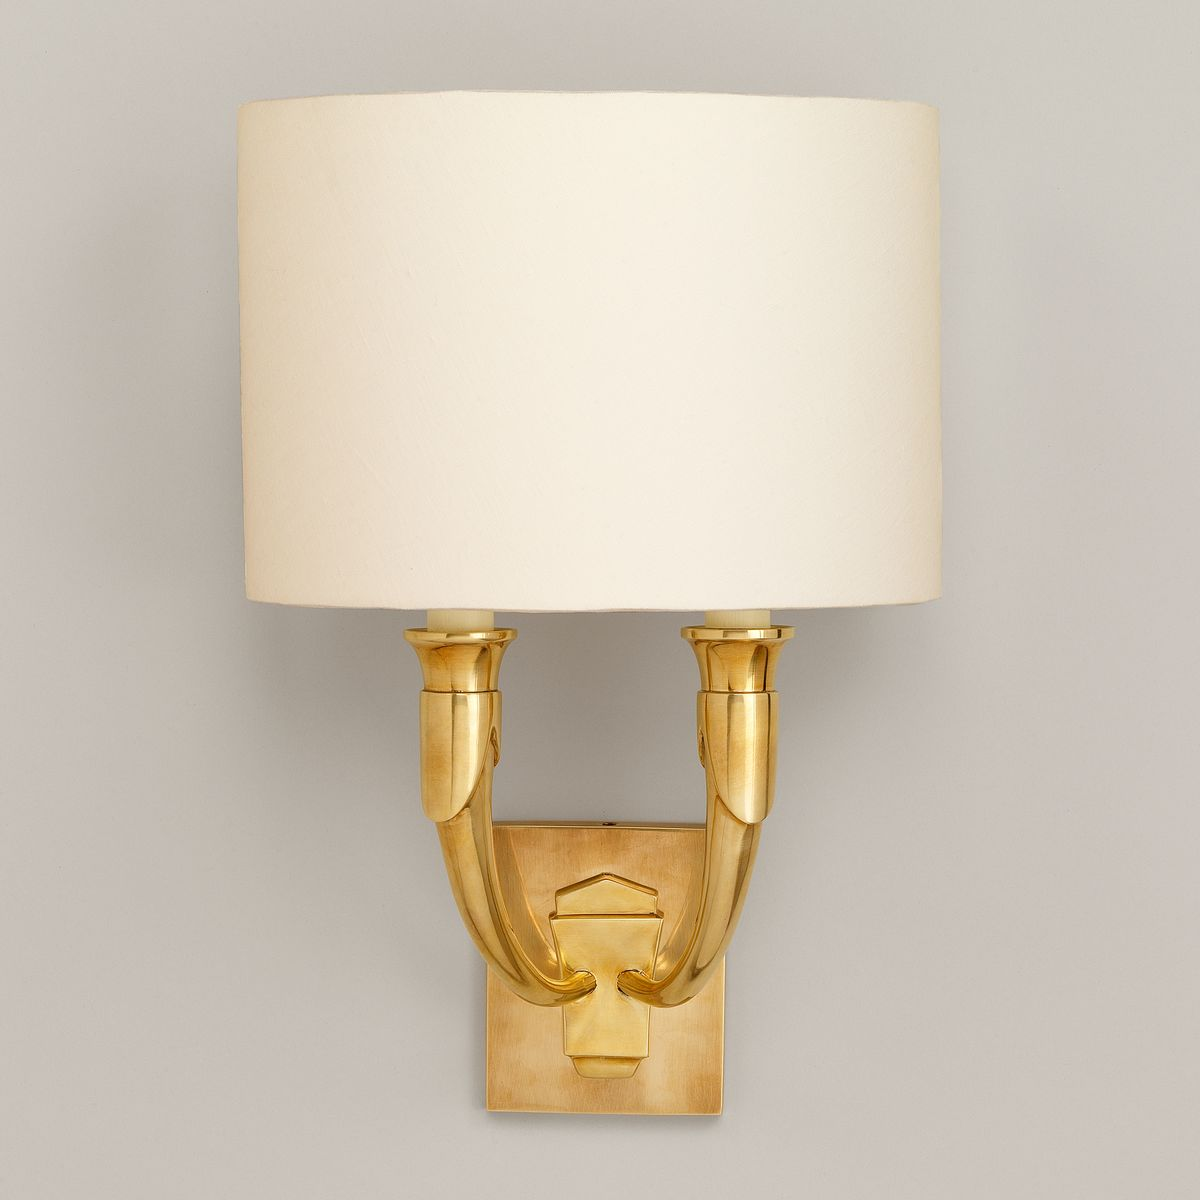 French Horn Wall Light-Brass | Nicholas Engert Interiors